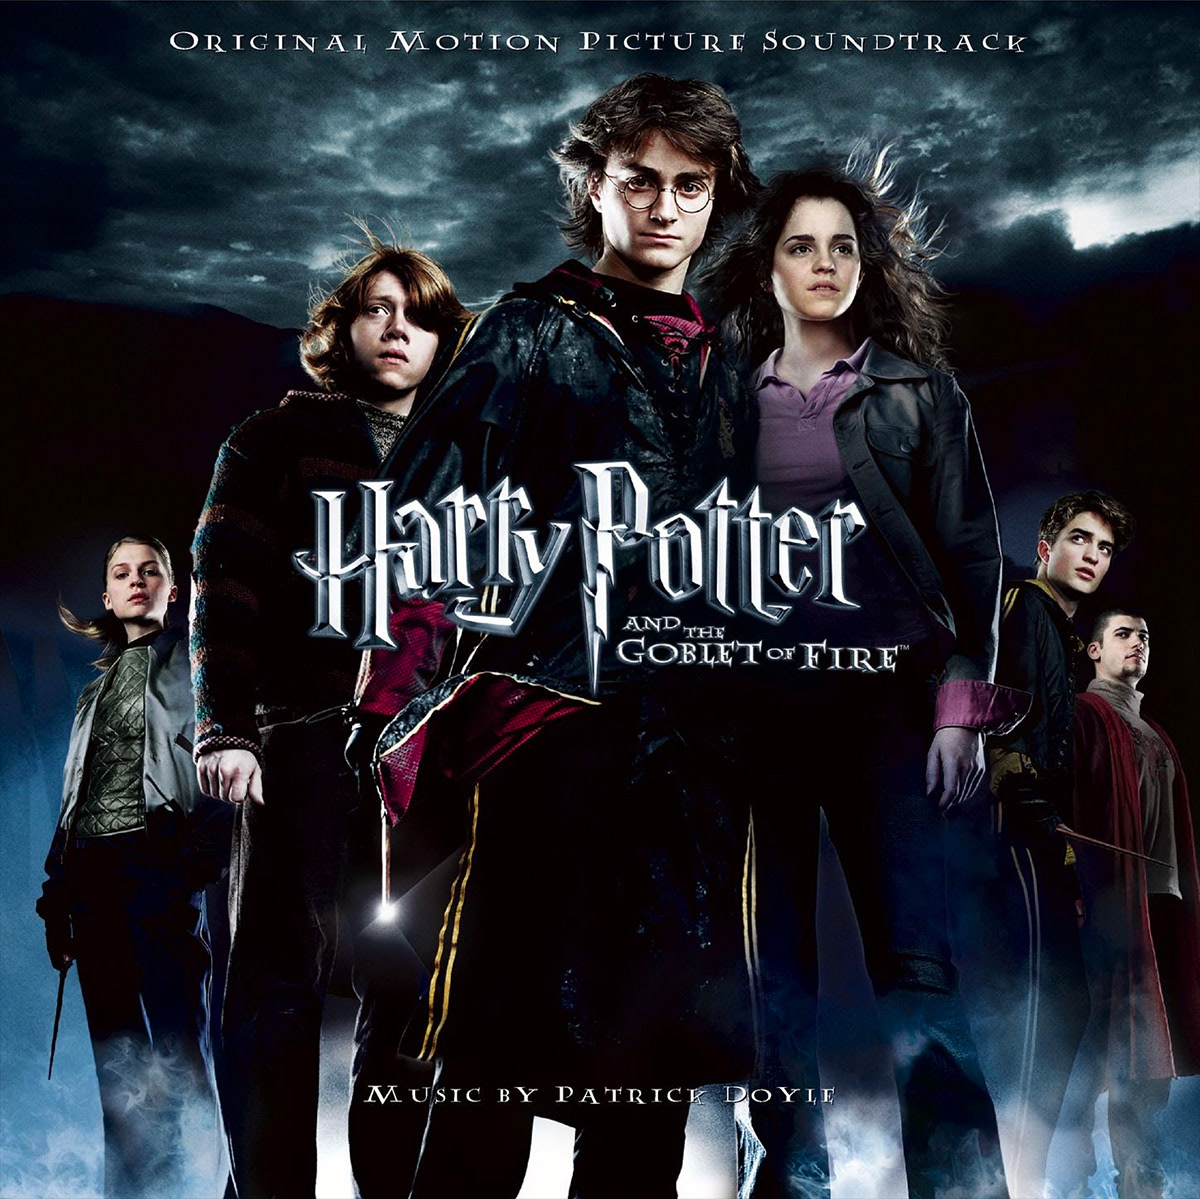 'Goblet of Fire' soundtrack